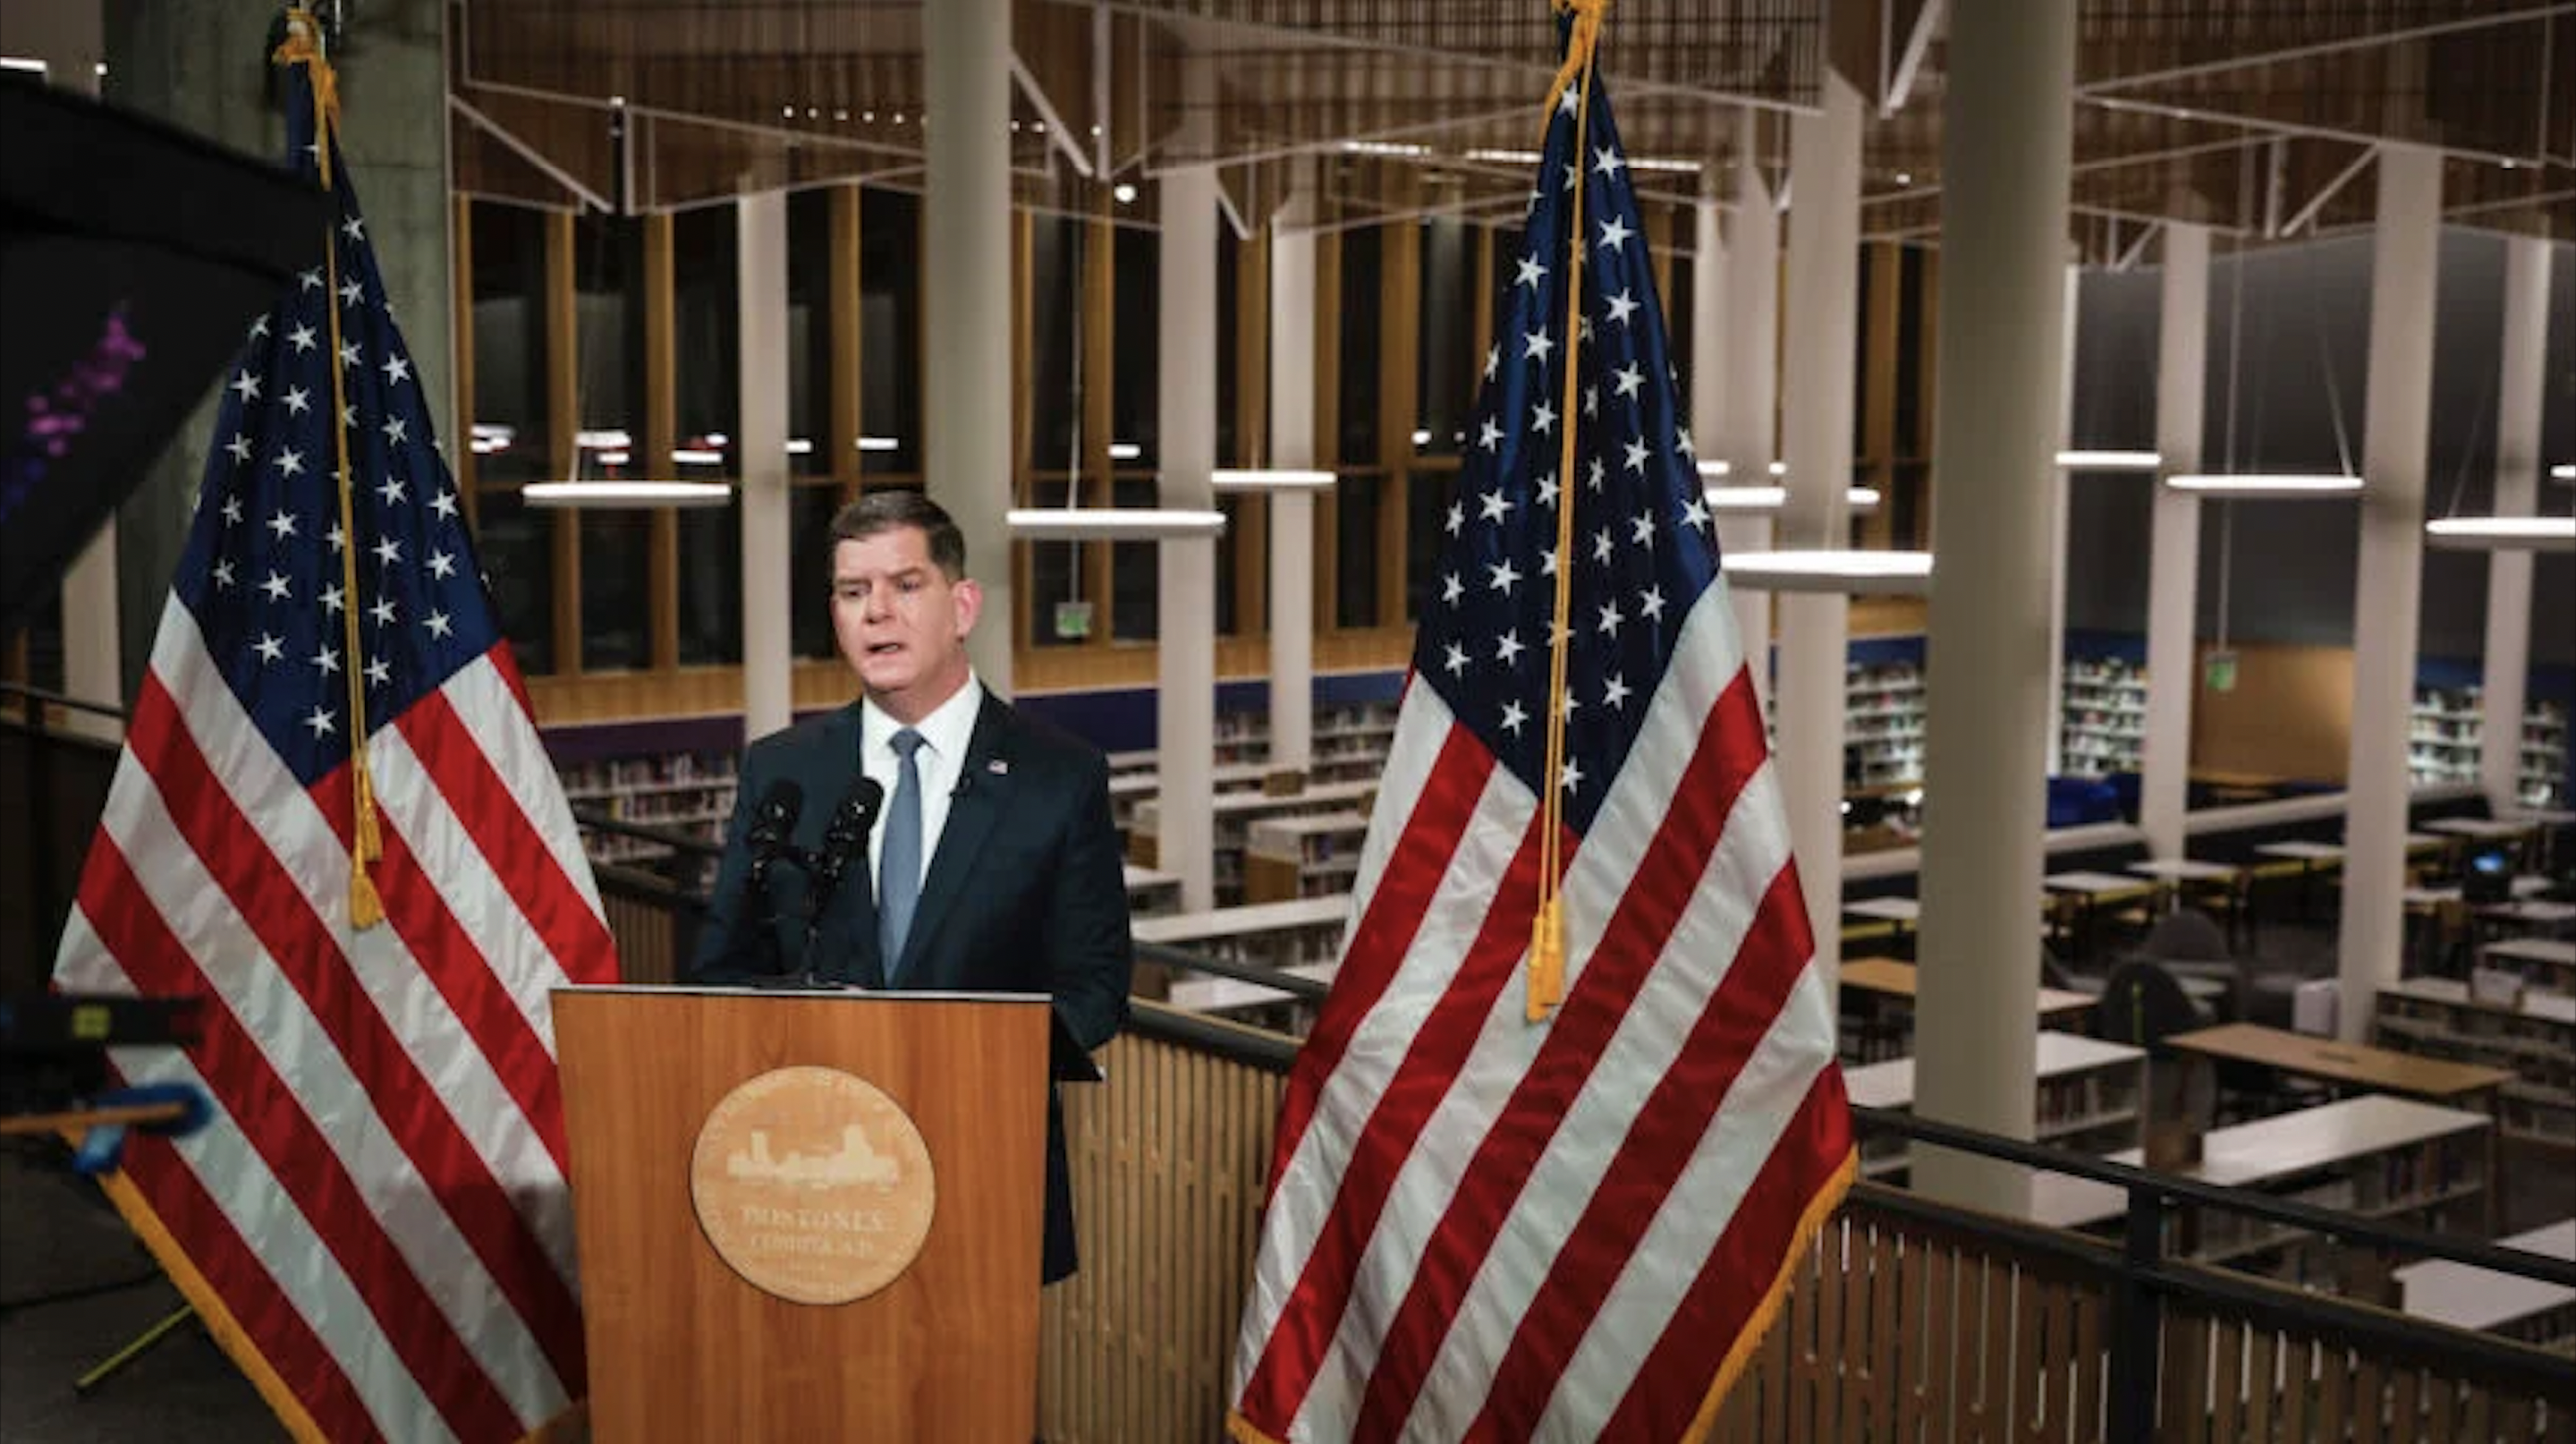 Mayor Walsh holds annual State of the City address at newly reopened Roxbury Branch Boston Public Library